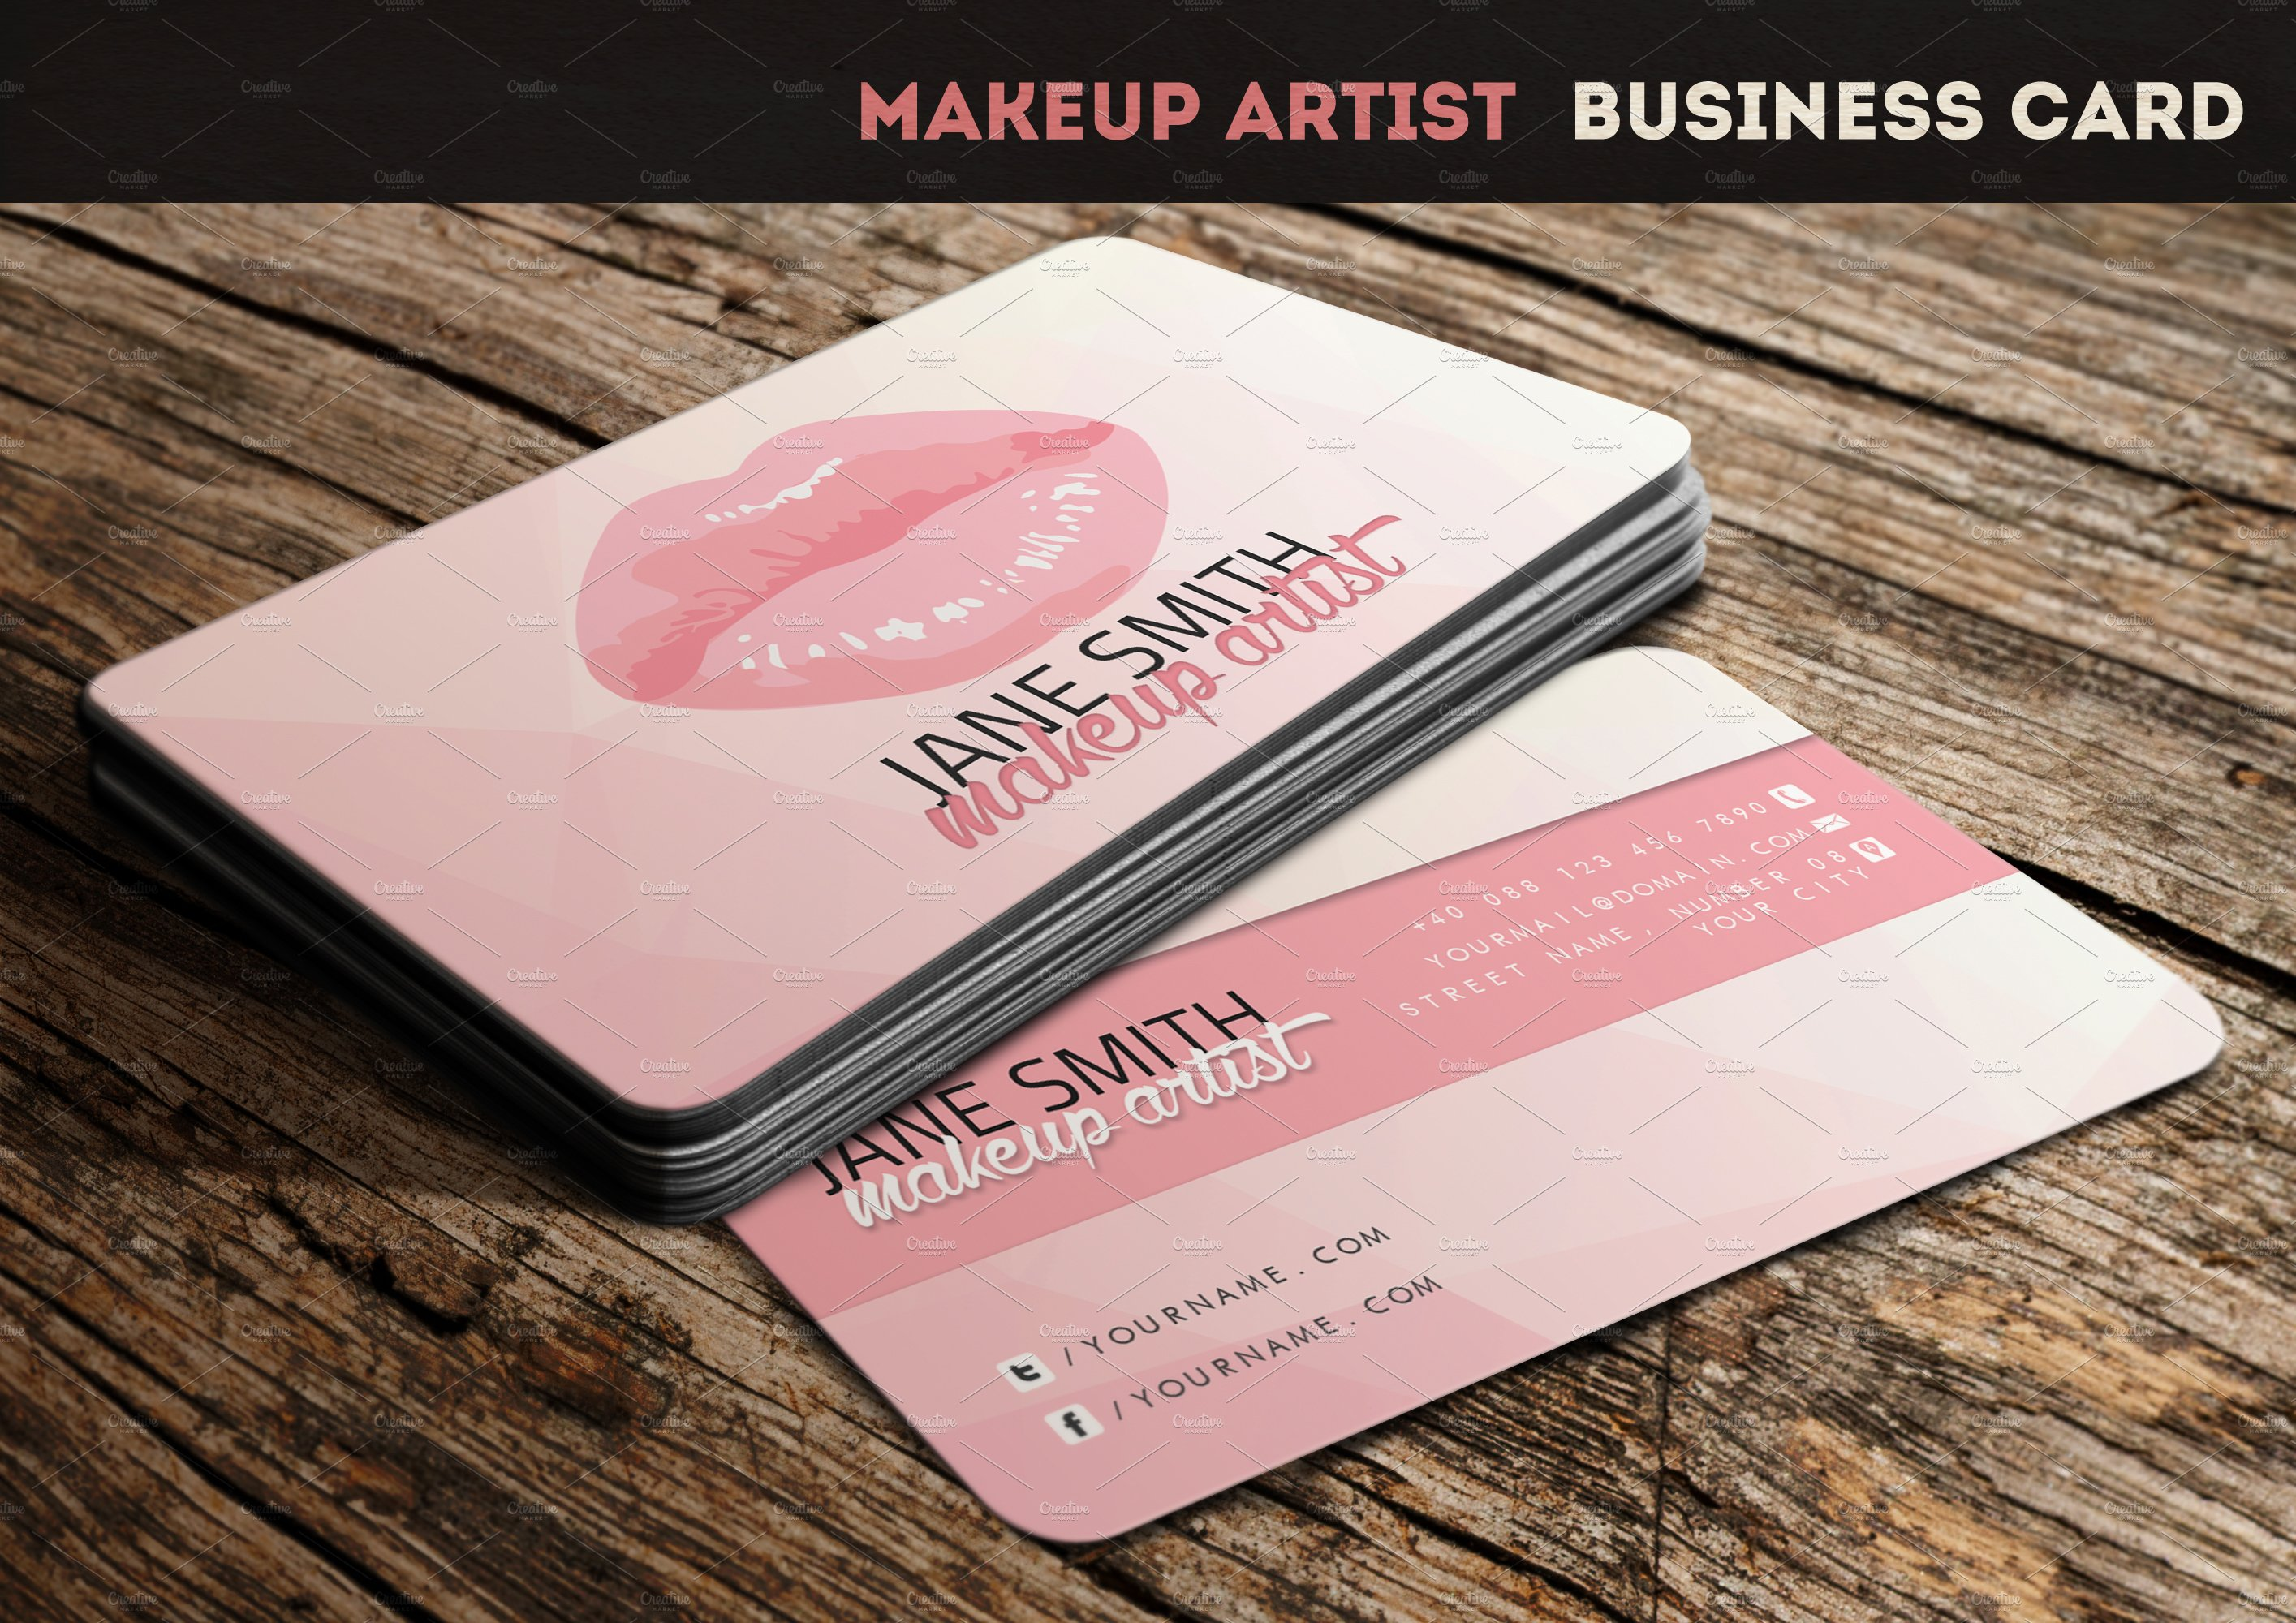 Free business plan template for makeup artist coursework pharmcas free business plan template for makeup artist wajeb Image collections